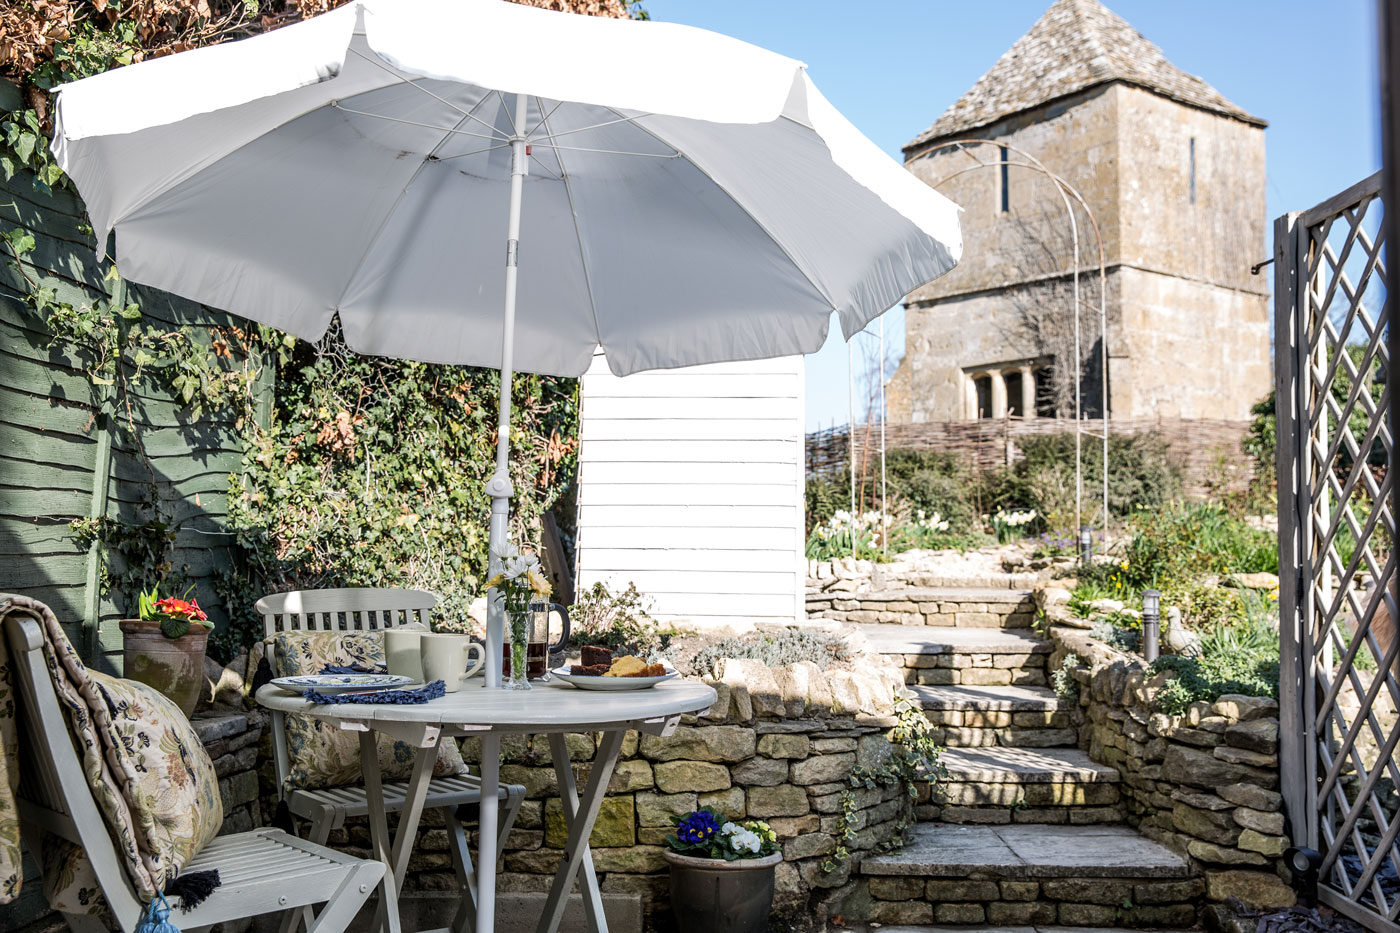 Garden - Outside, The Nook has its own private terrace with table and chairs and access to the shared garden where there is another larger table and chairs with BBQ.